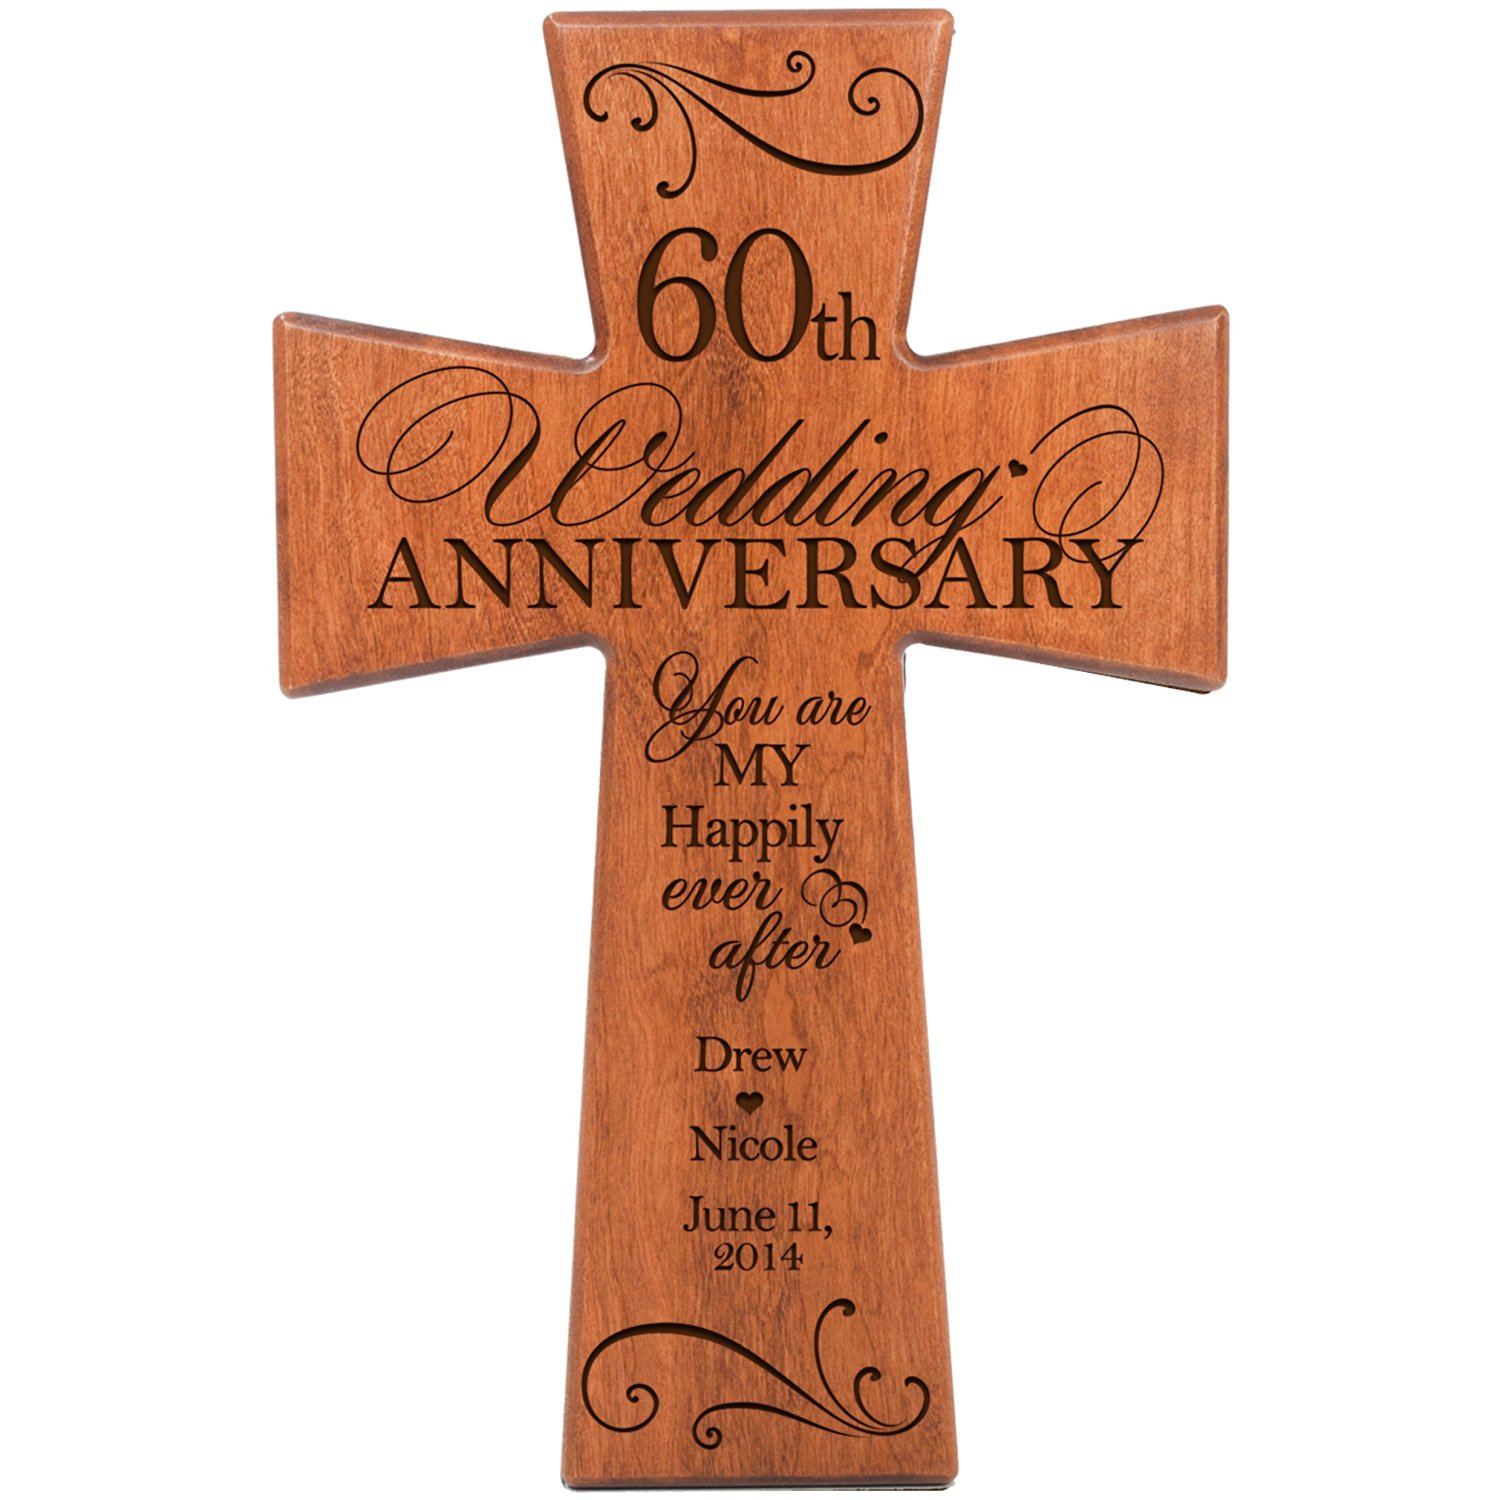 Personalized 60th Wedding Anniversary Gift for Couple, Cherry Wall Cross Gifts for Her, 60 year ideas for Him, Every Love Story Is Beautiful but Ours Is My Favorite by DaySpring Milestones (7x11)